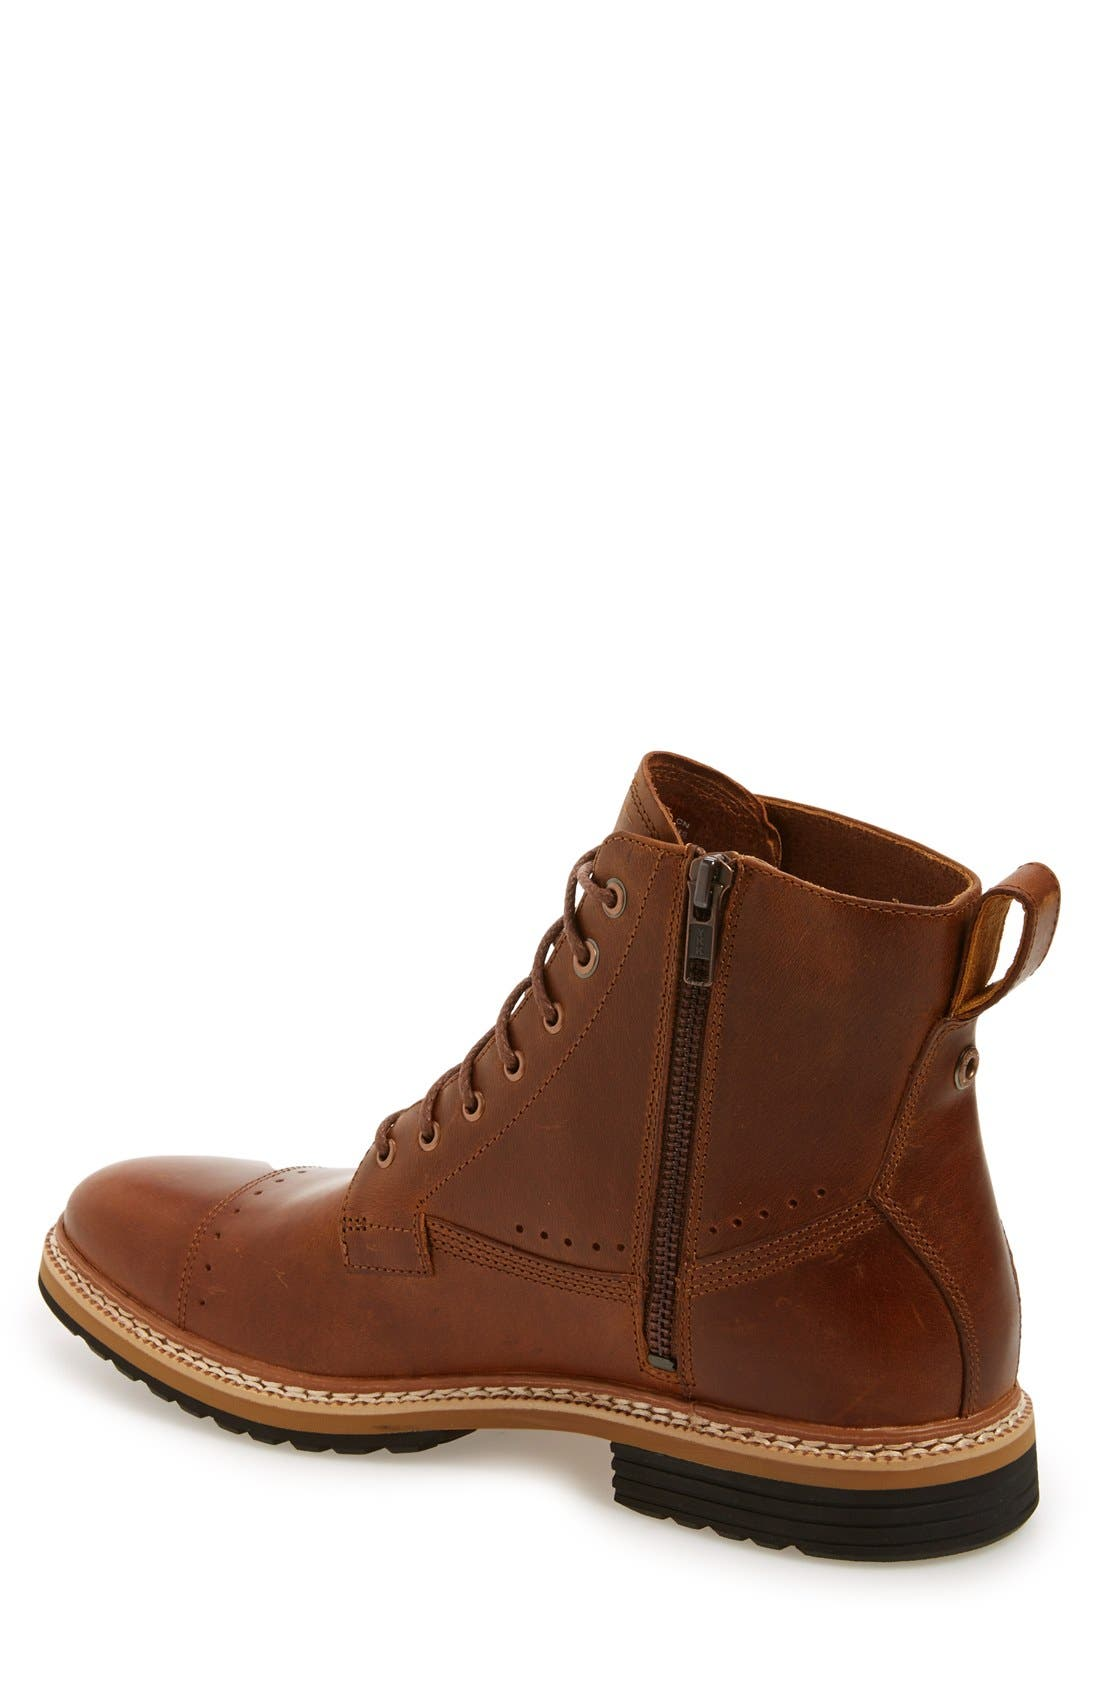 Westhaven 6 Side Zip Boot,                             Alternate thumbnail 2, color,                             LIGHT BROWN LEATHER